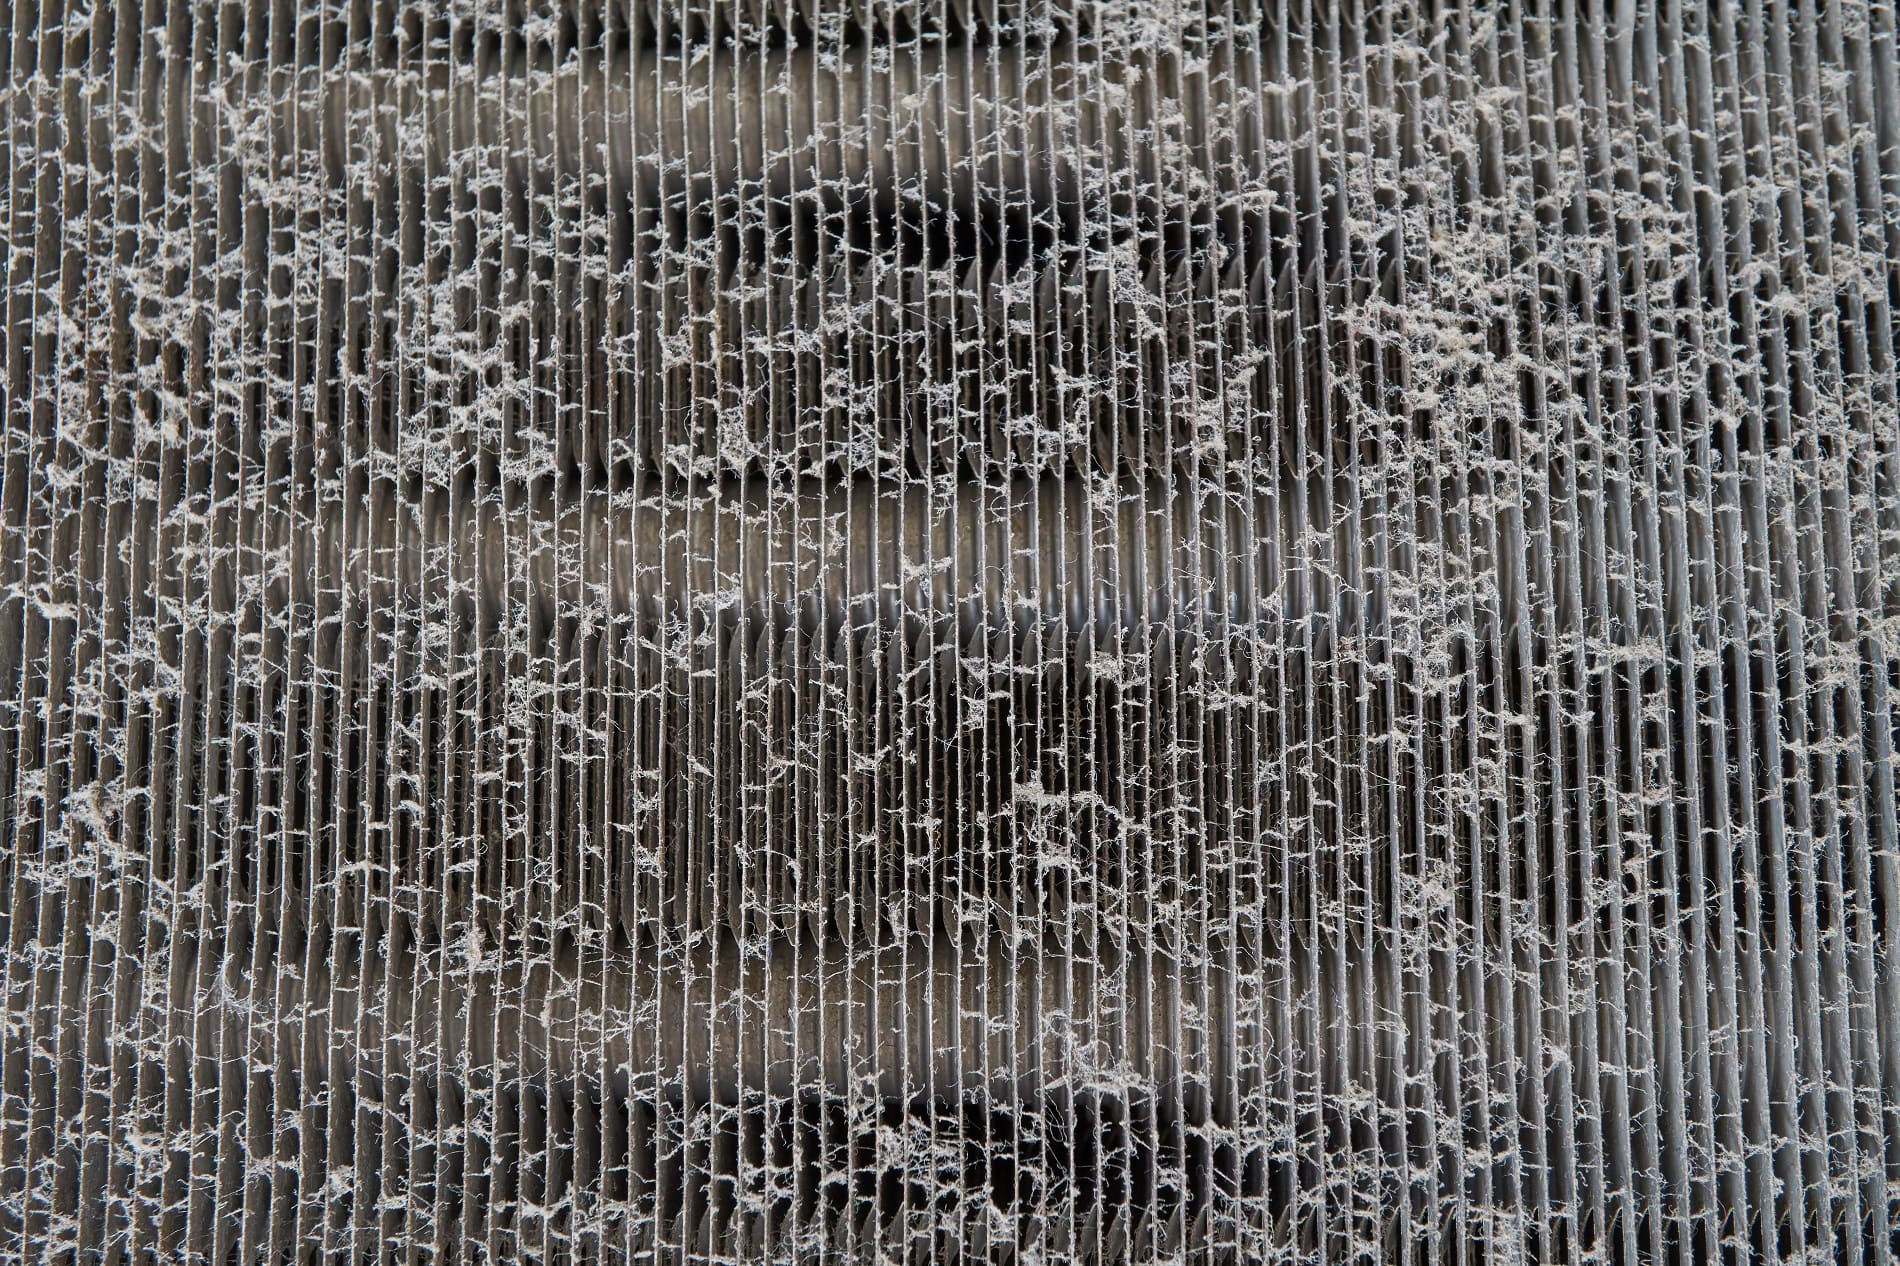 airside fouling on a heat exchanger's fin pack